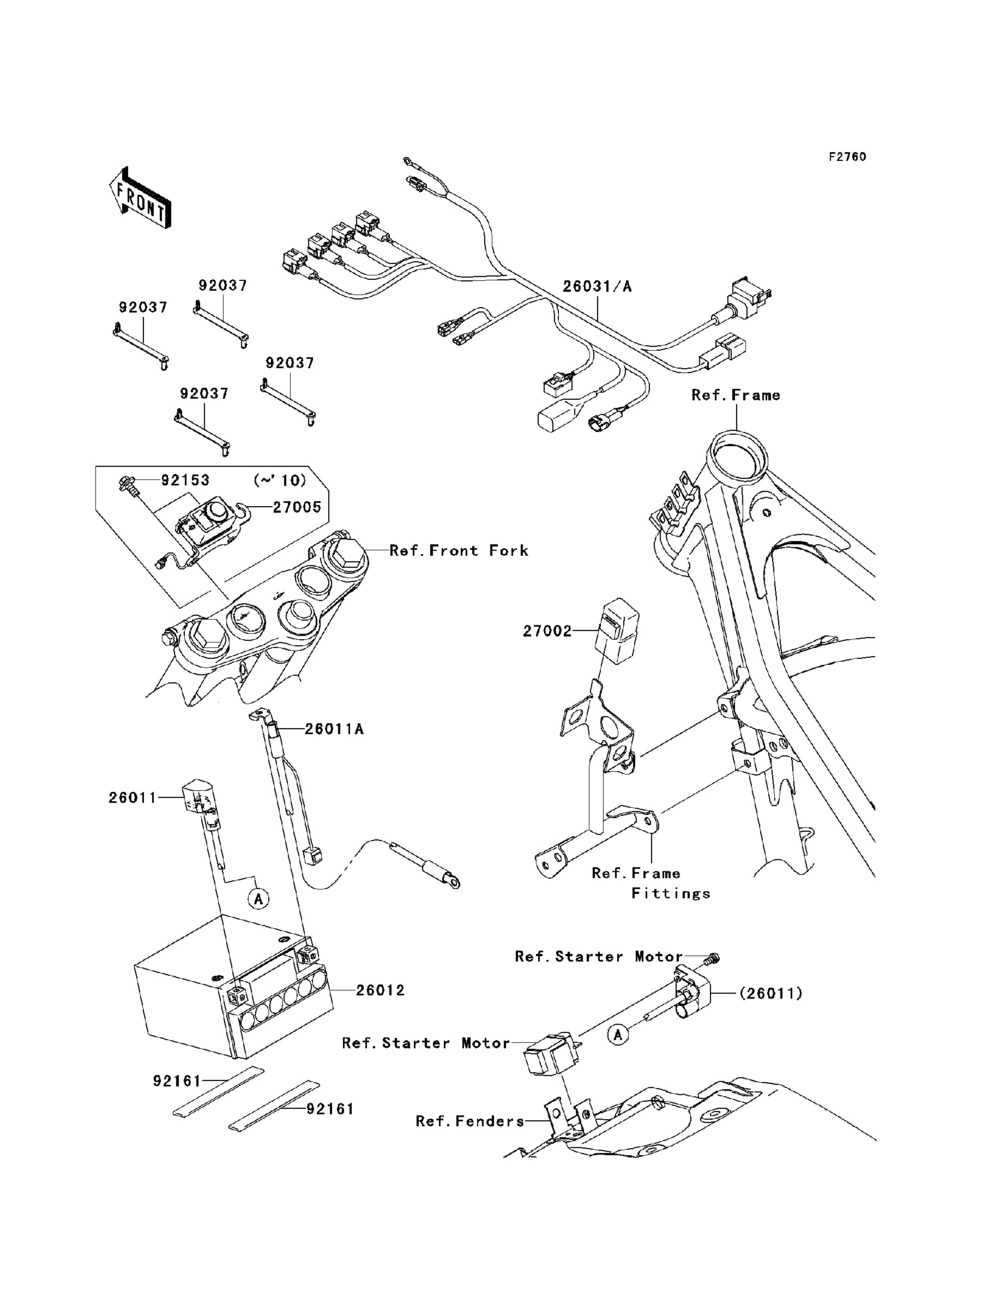 klx140 wiring diagram wiring library PS2 Controller Layout klx140 wiring diagram